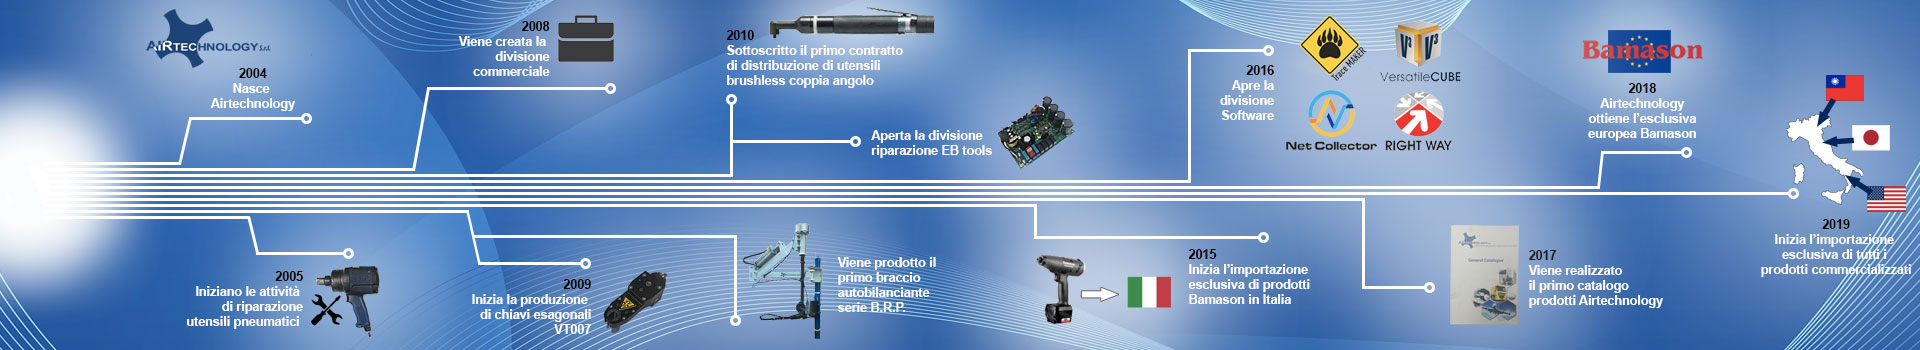 linea tempo Avvitatori per assemblaggio industriale Founded in 2004, Airtechnology was founded as a service and maintenance center to support the most prestigious assembly tool brands on the market,